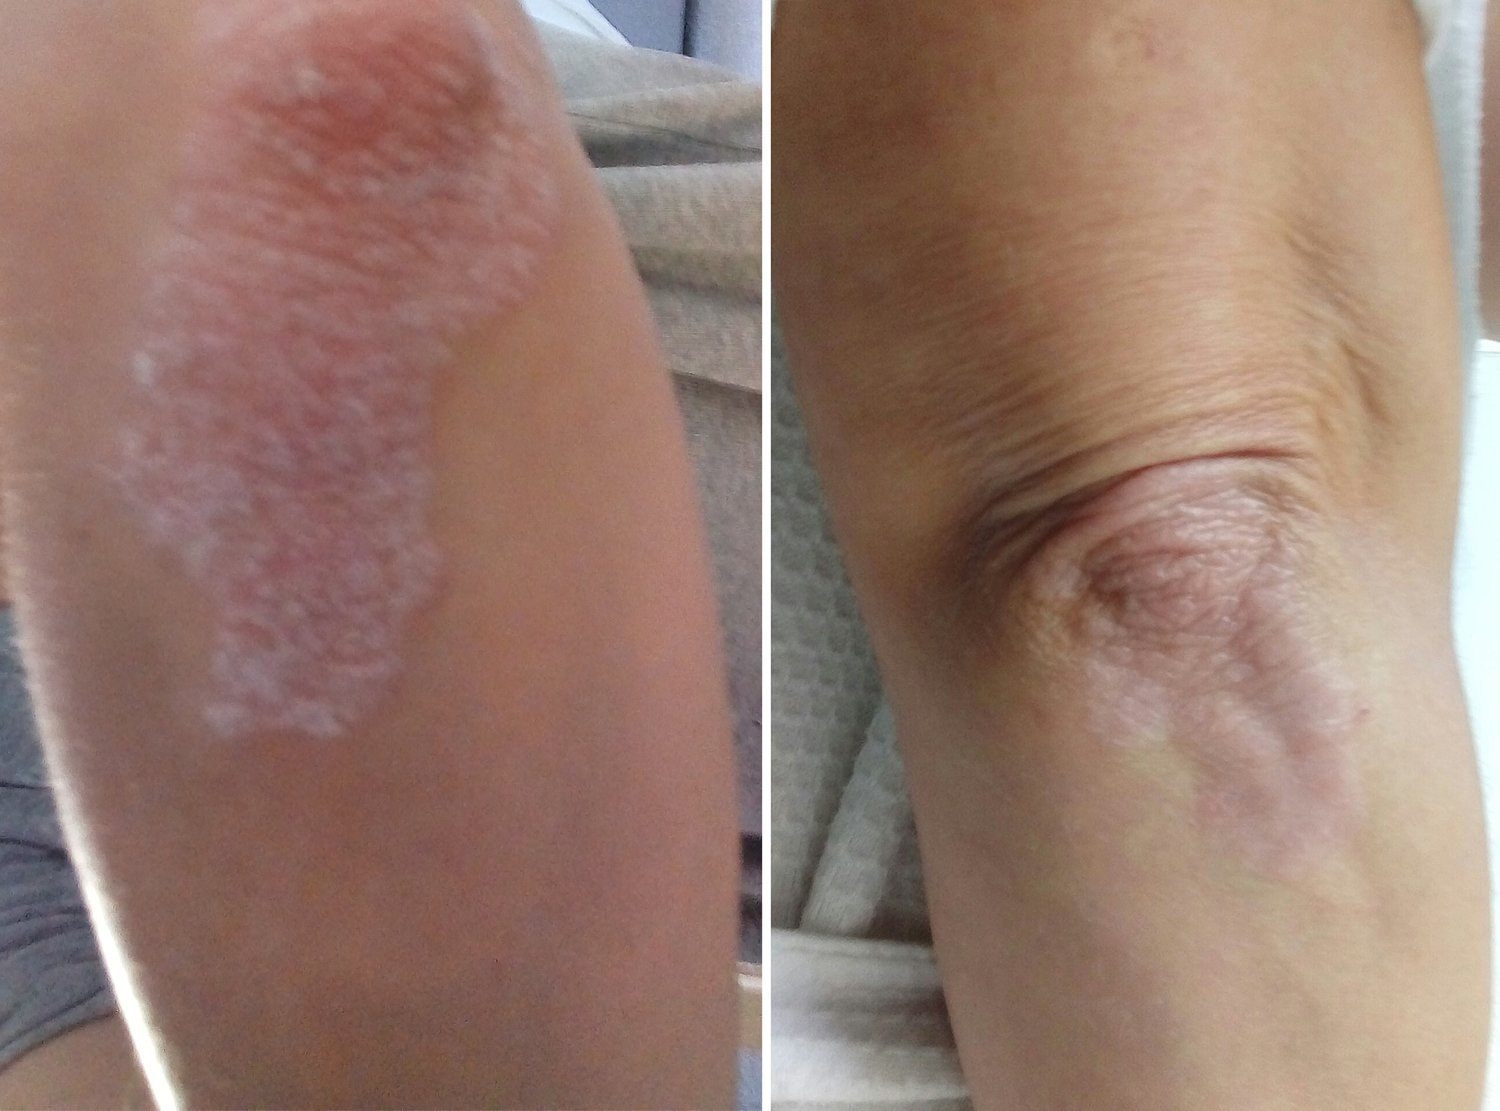 BEFORE & AFTER: Psoriasis sufferer Becky